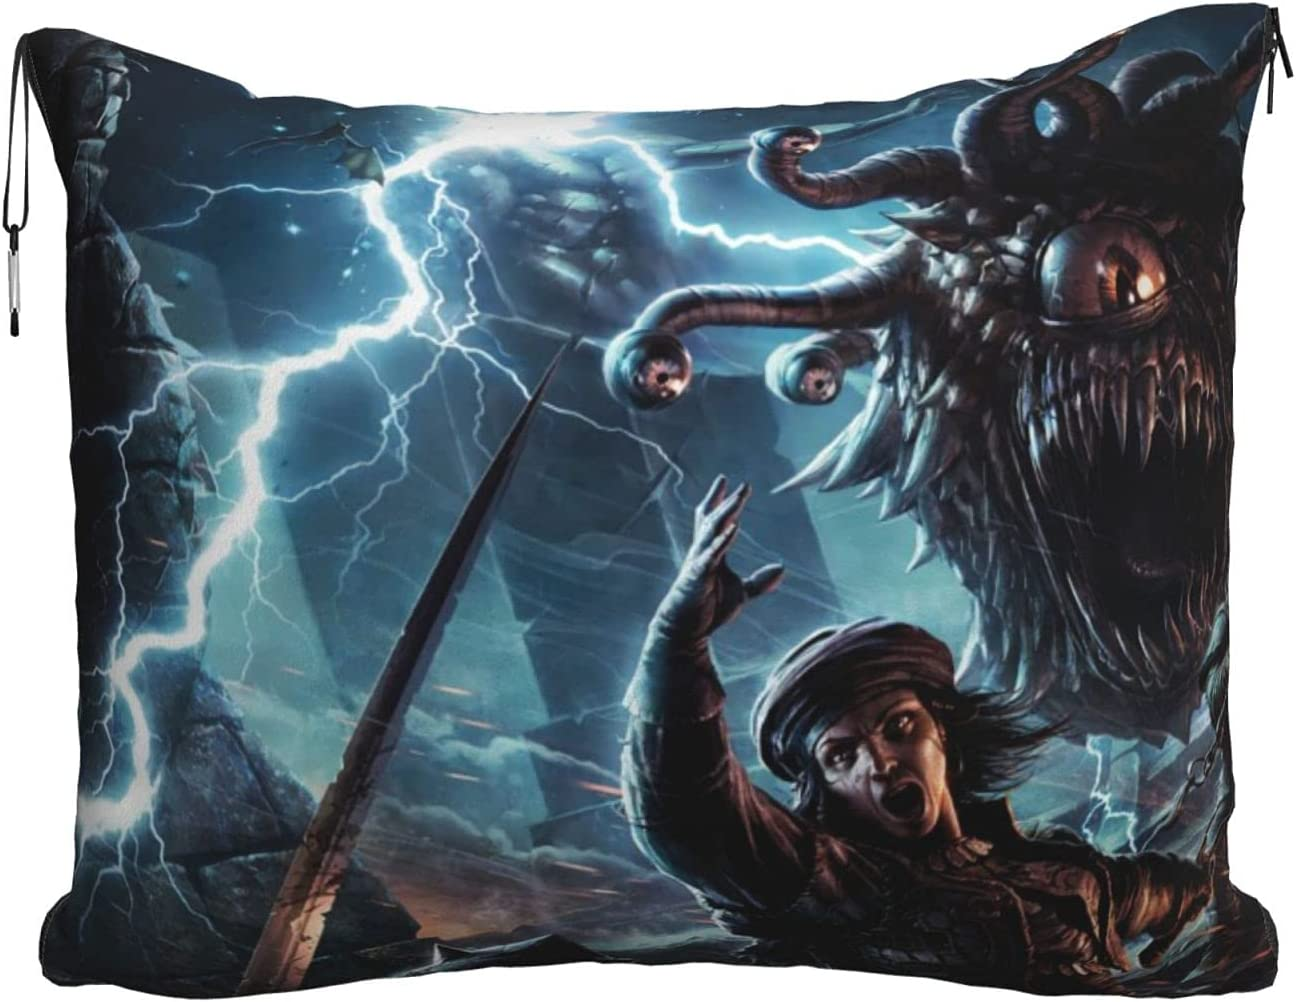 Dungeons Game Dragons Soft OFFicial Max 51% OFF site Travel Pillow Blanke Blanket Airplane